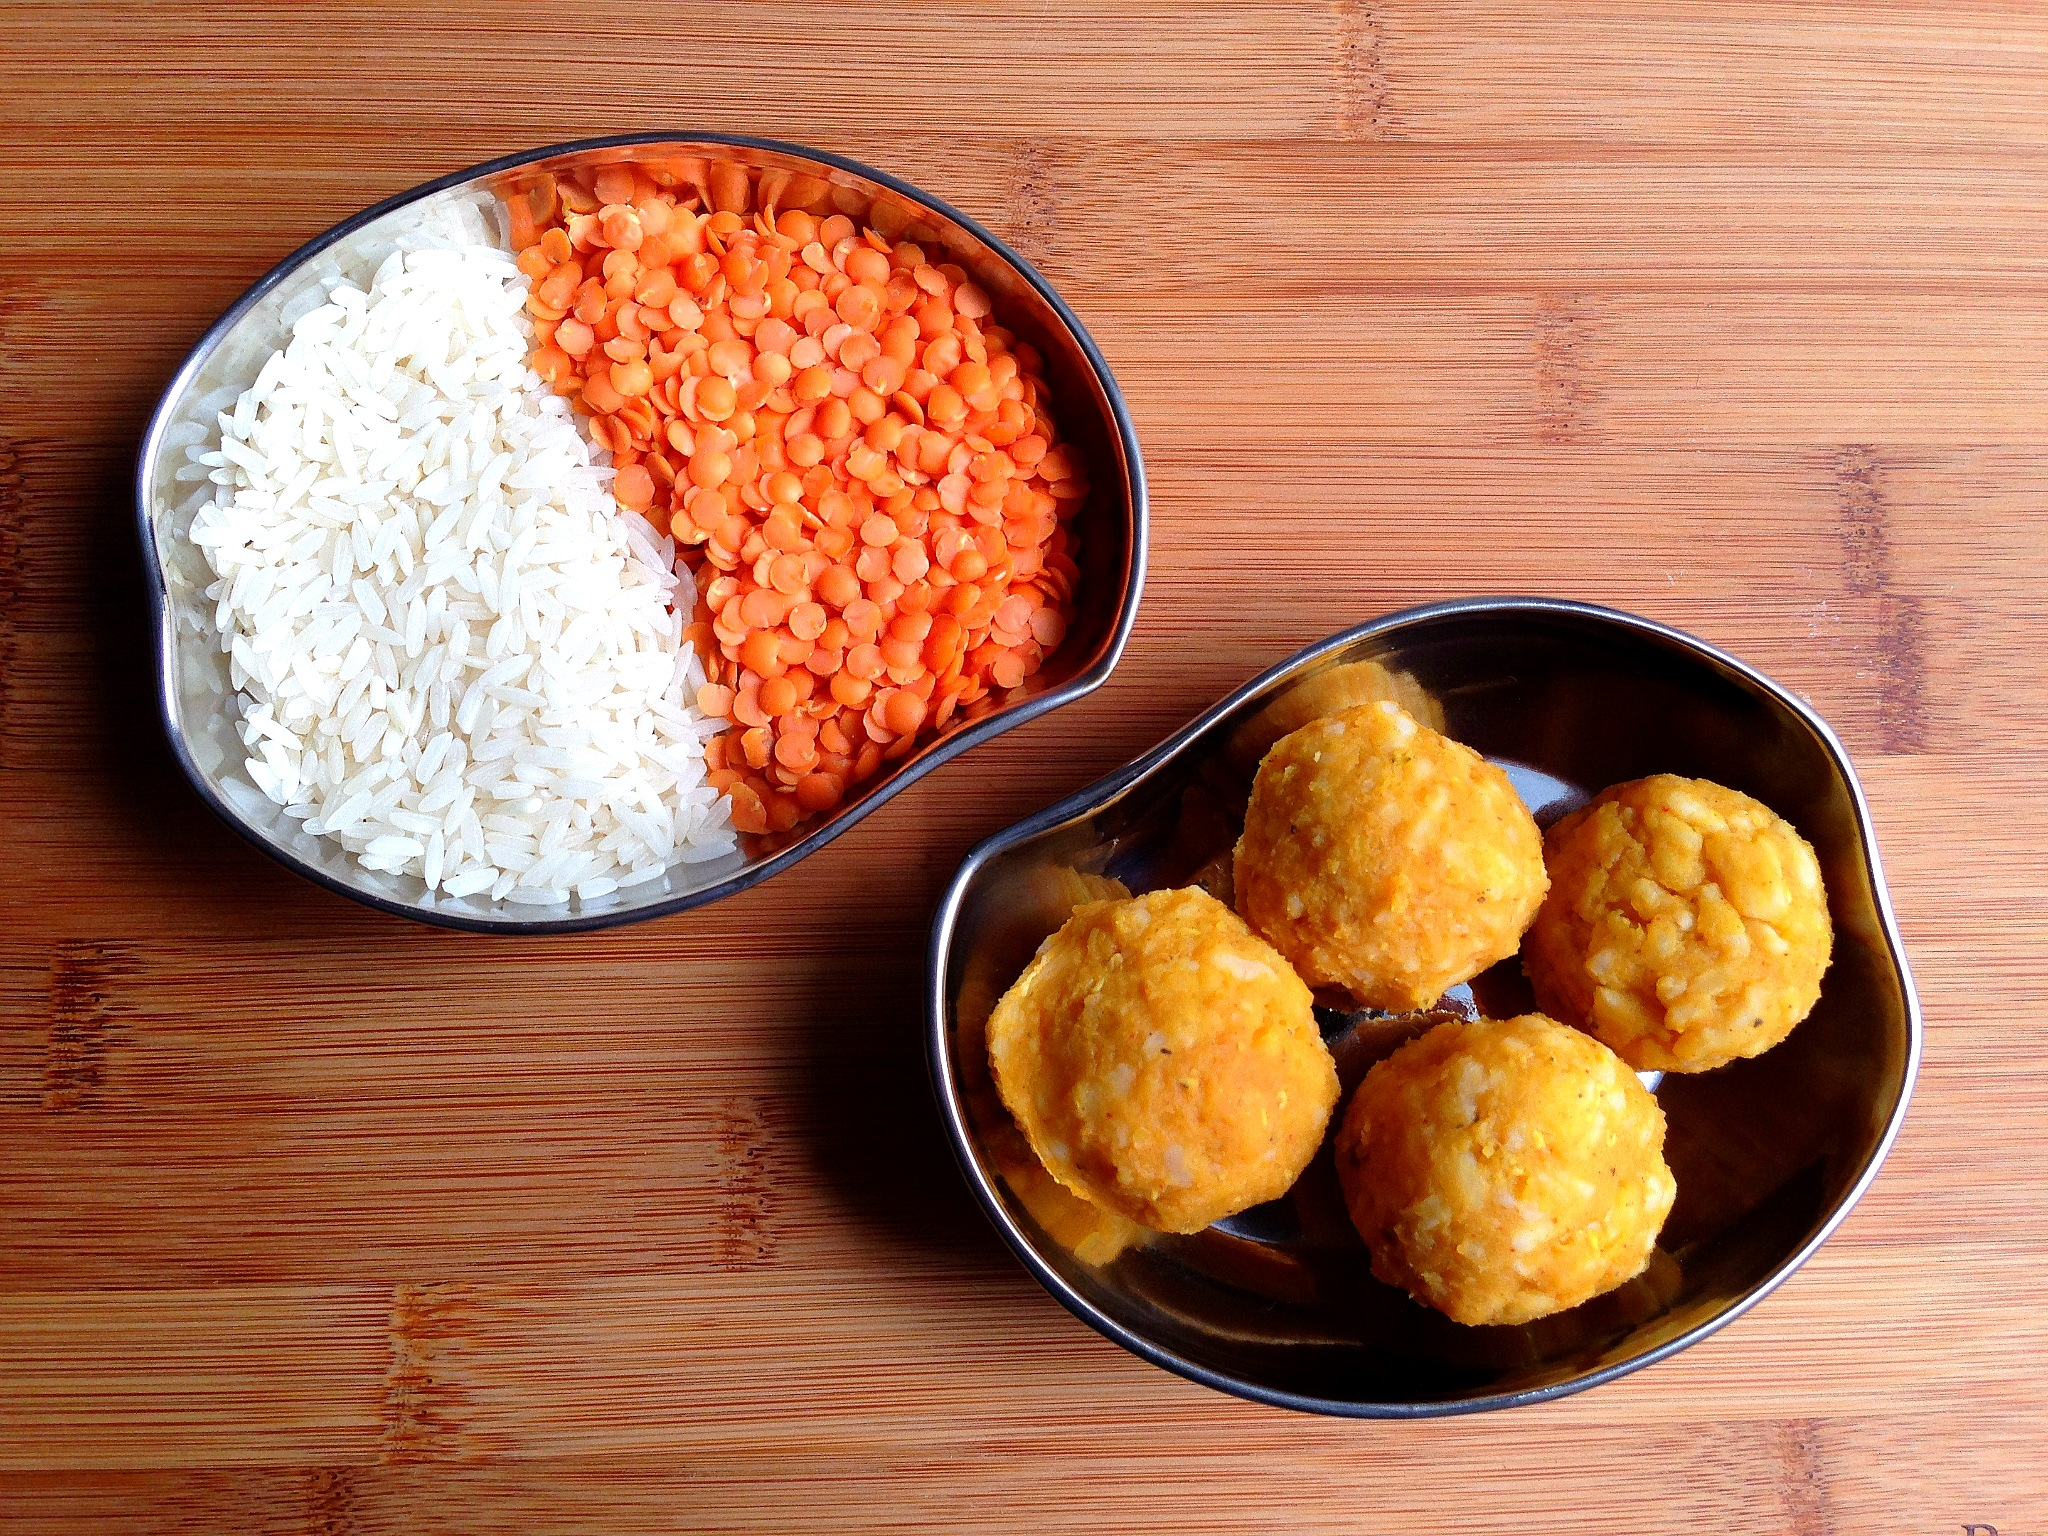 Raw rice and red lentils turned into soft rice and lentil balls for toddlers